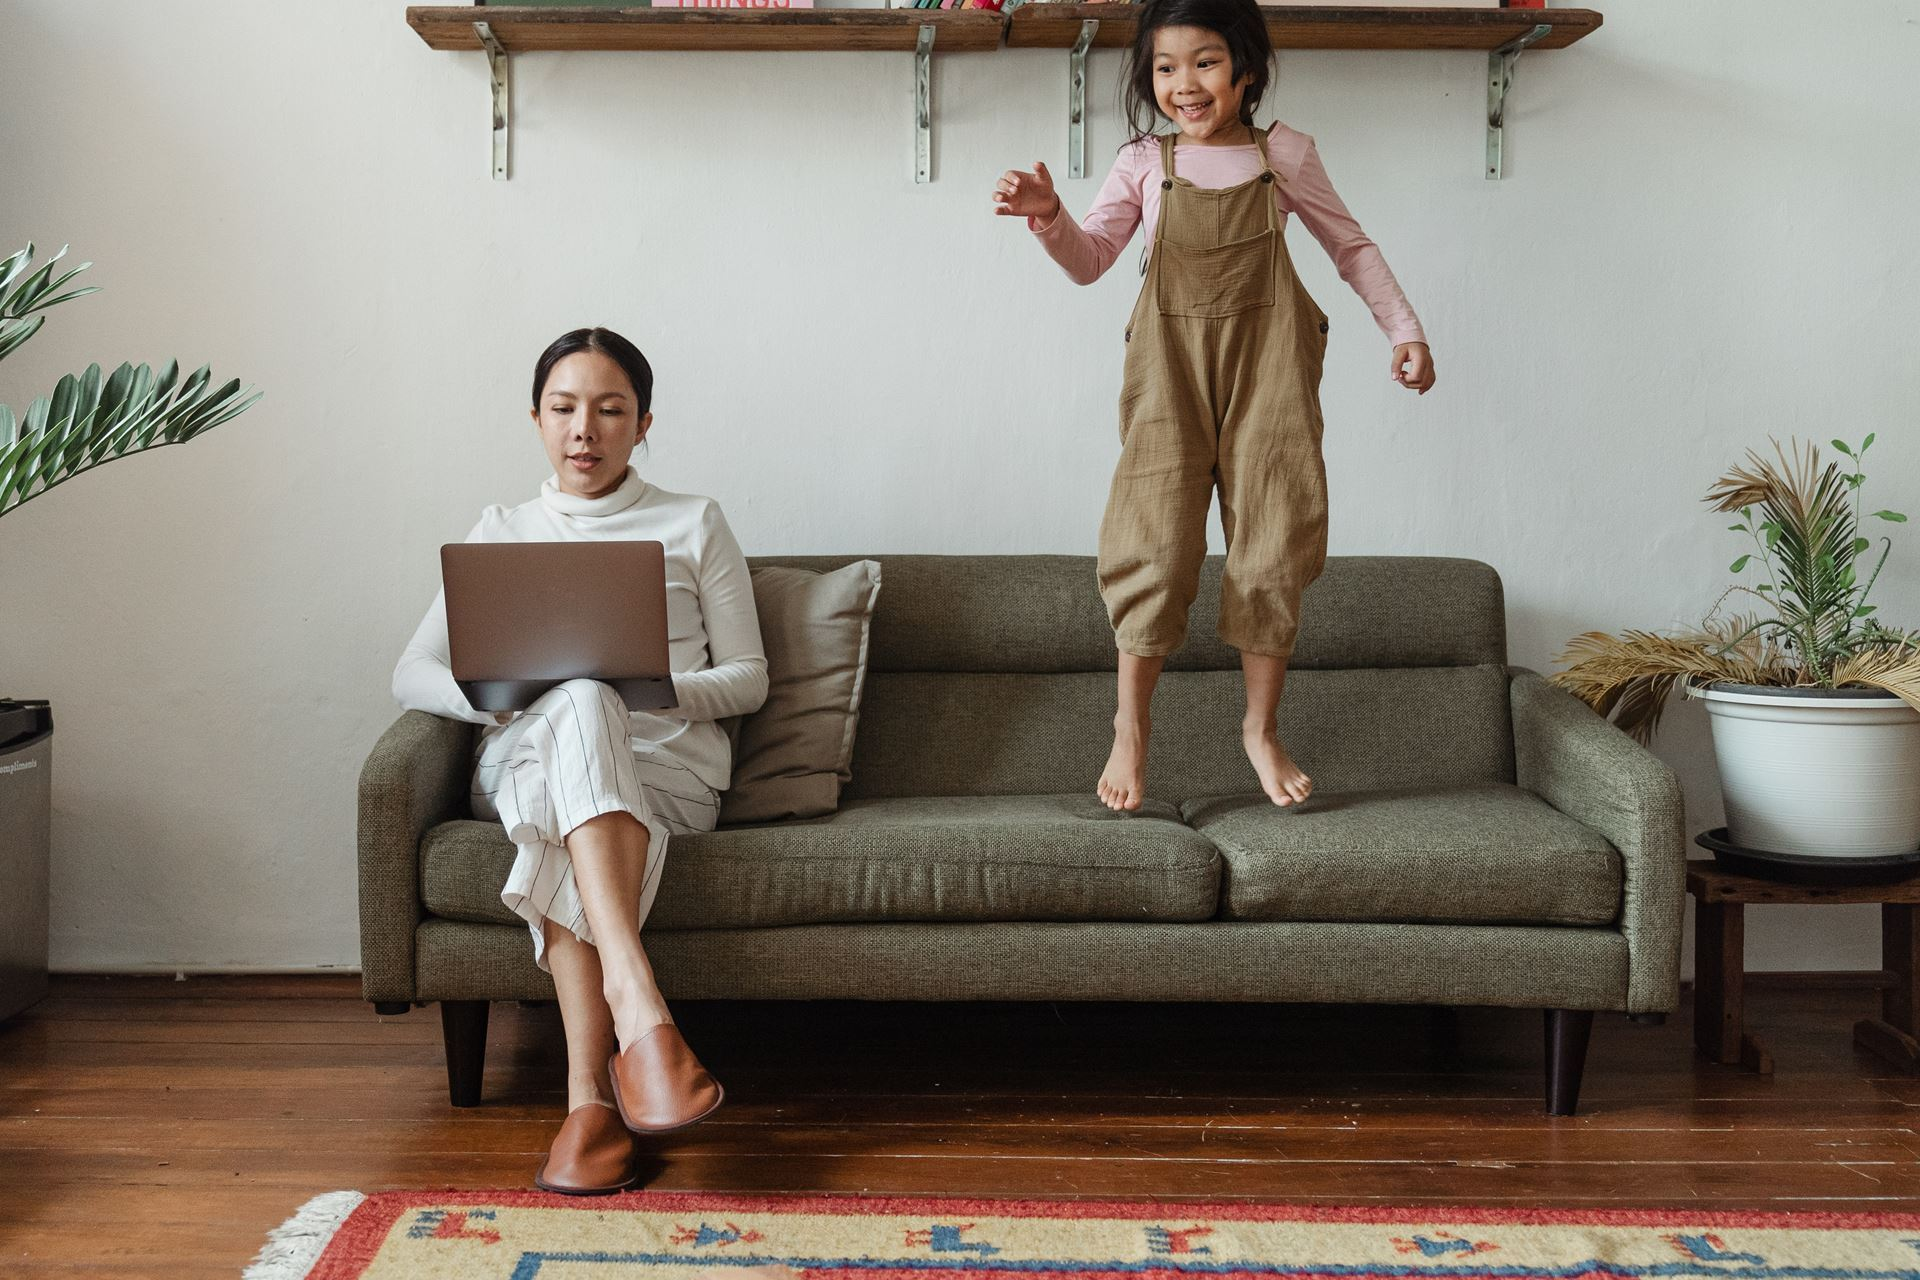 a woman sits on a couch with her laptop on her legs while a young child jumps on the couch next to her; plants are visible on either side of the couch